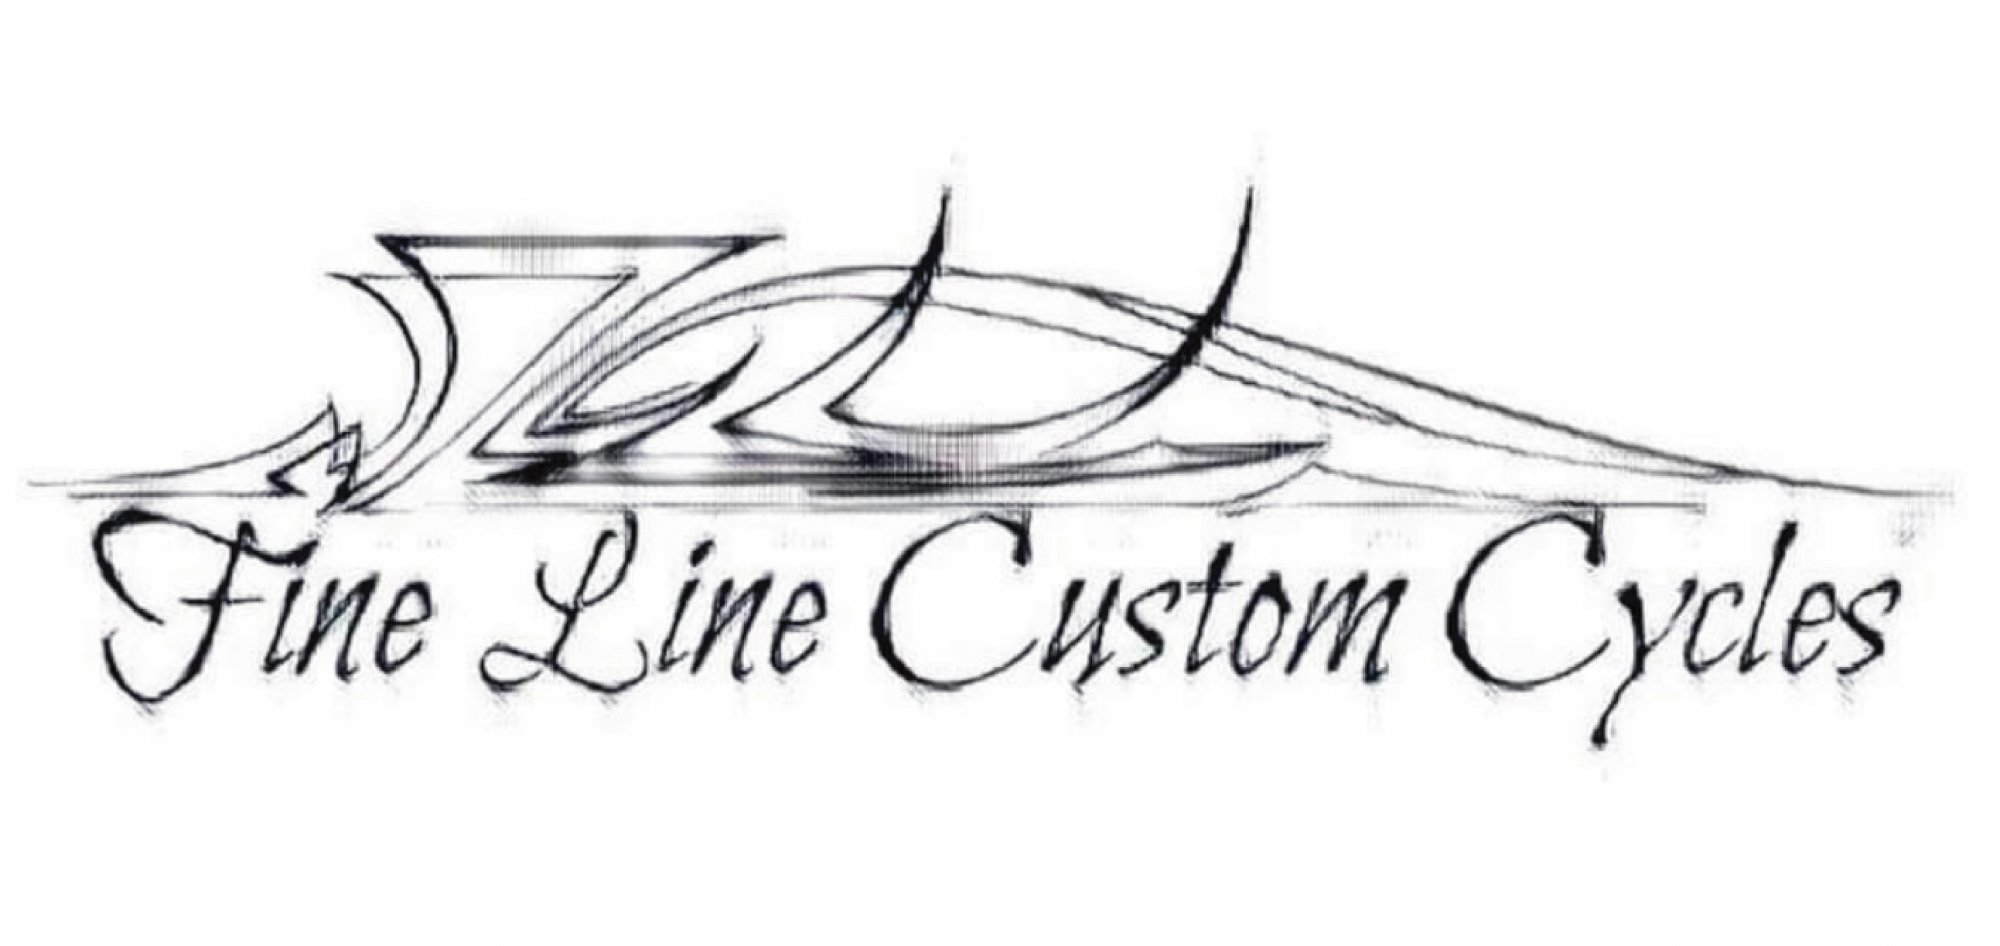 Fine Line Custom Cycles logo